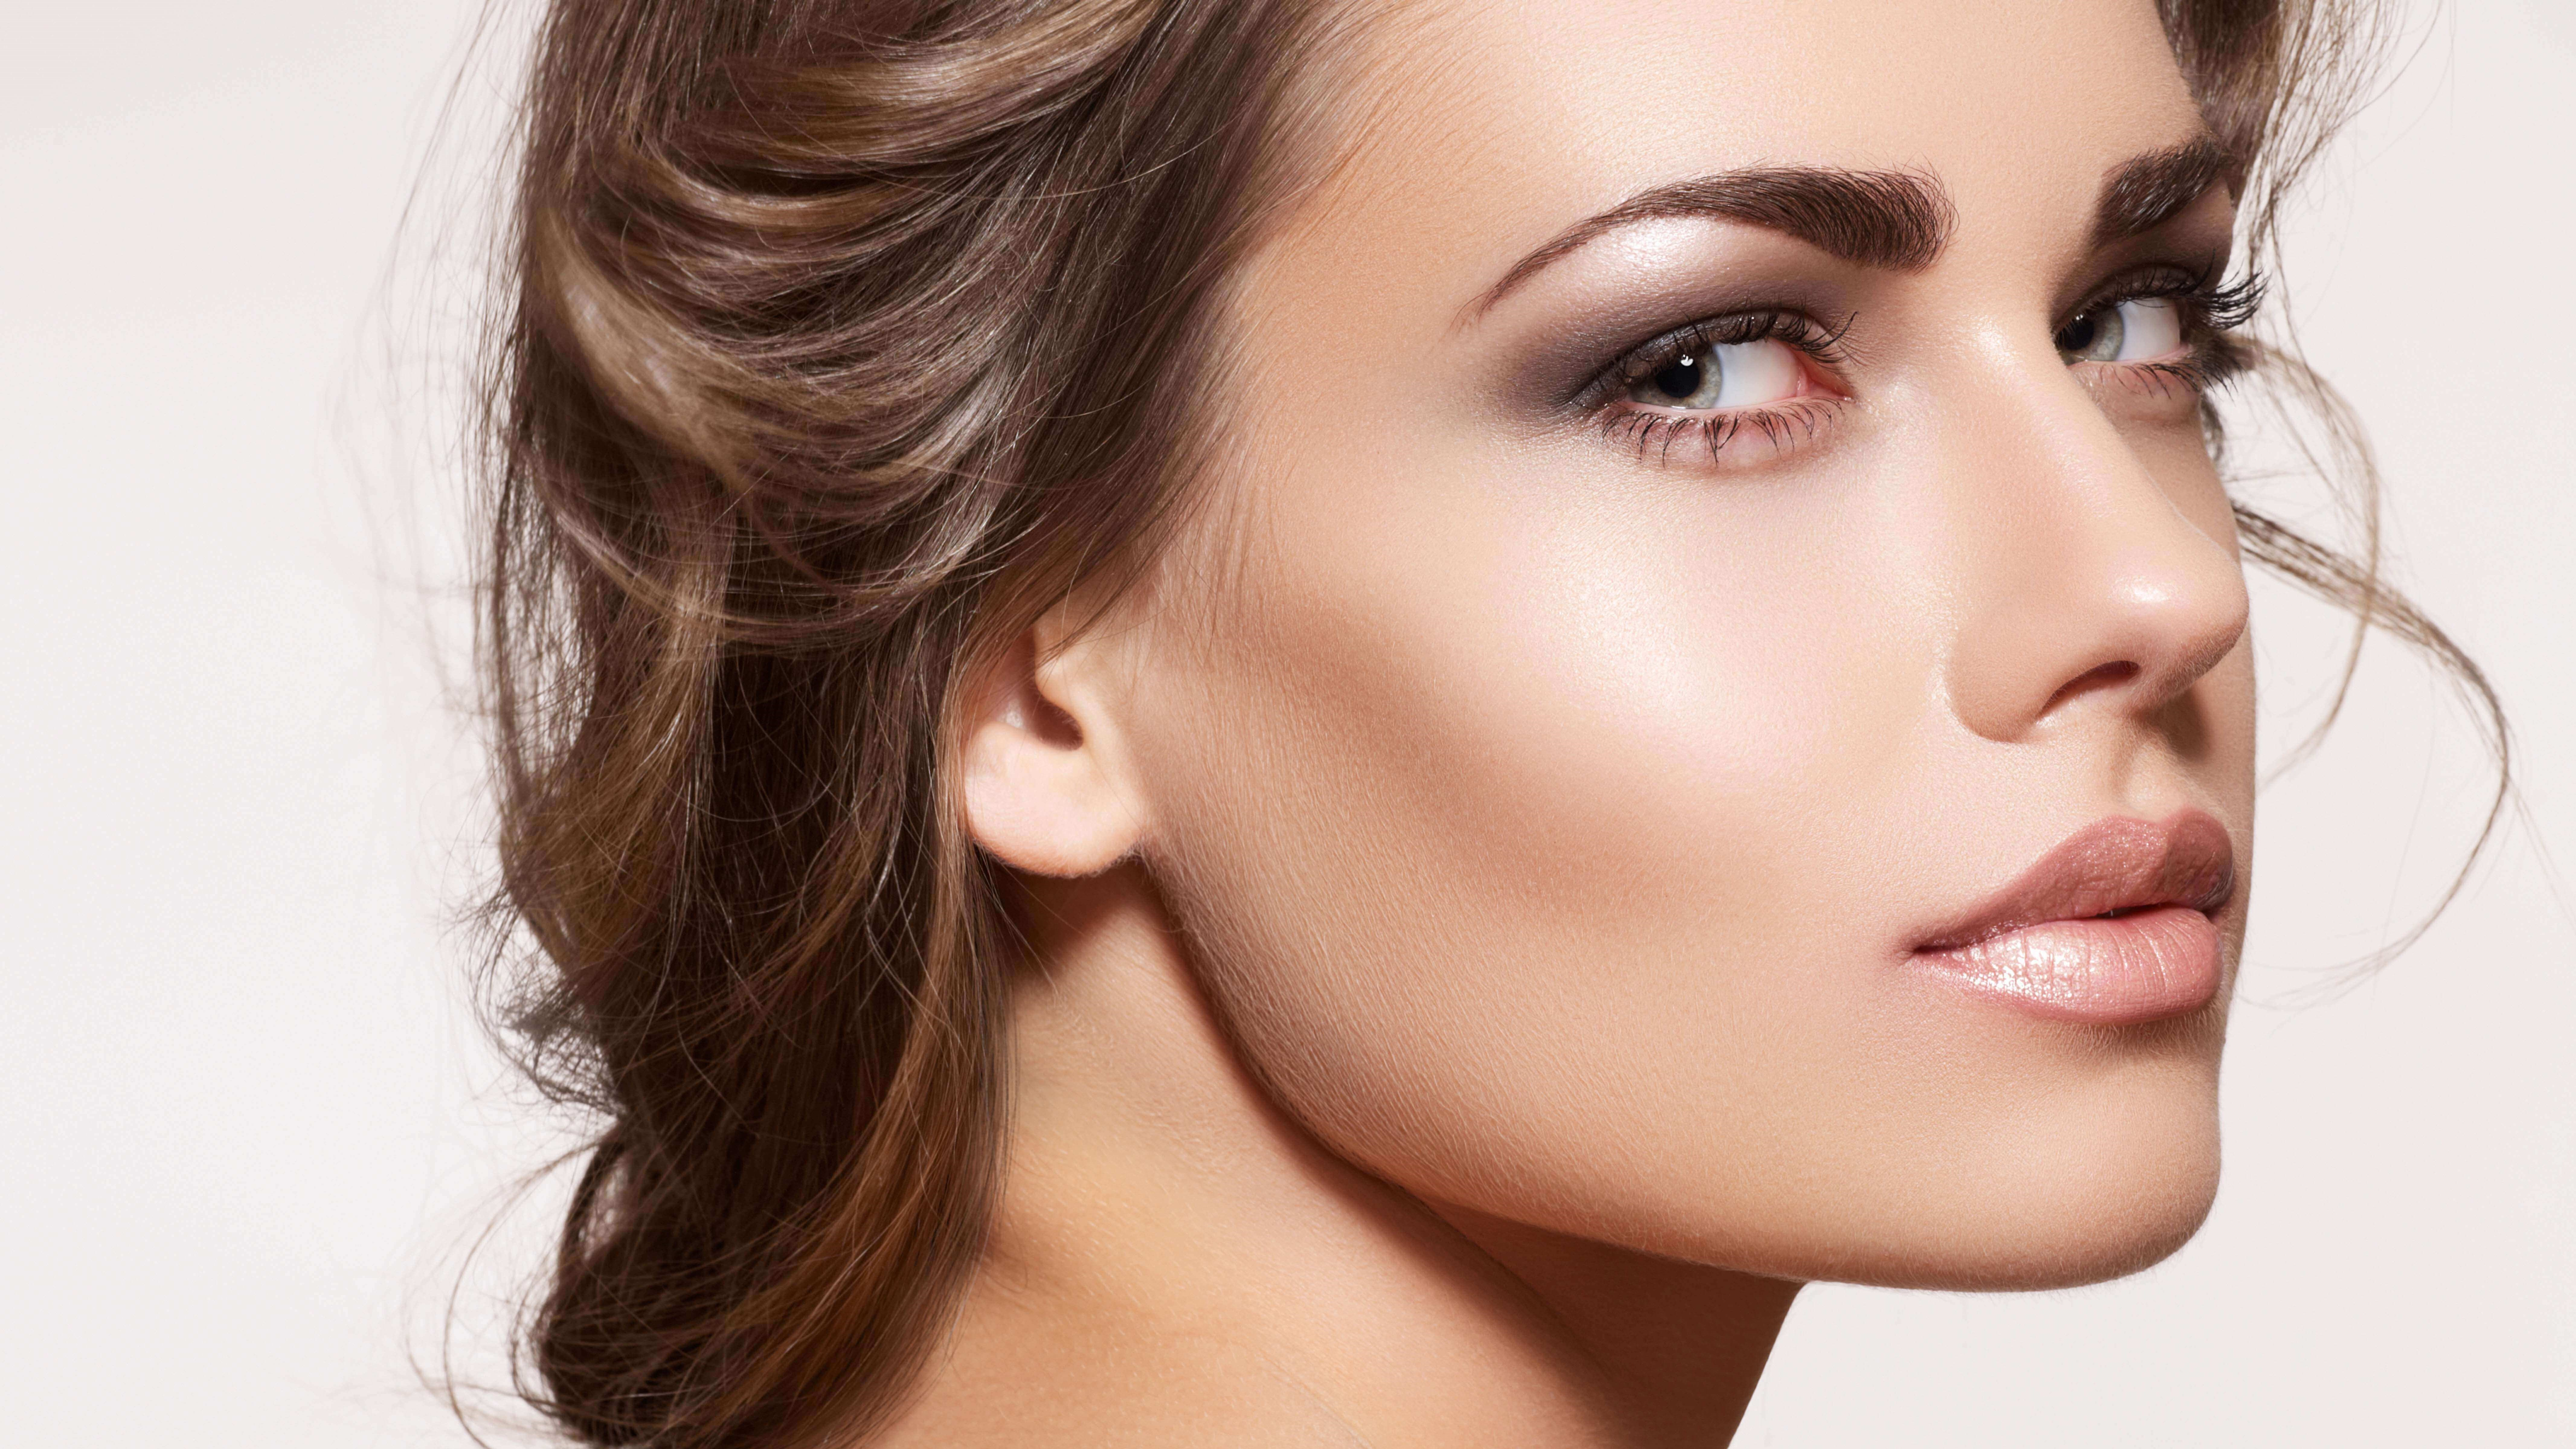 Five Things to Consider When Thinking About Cosmetic Injectables